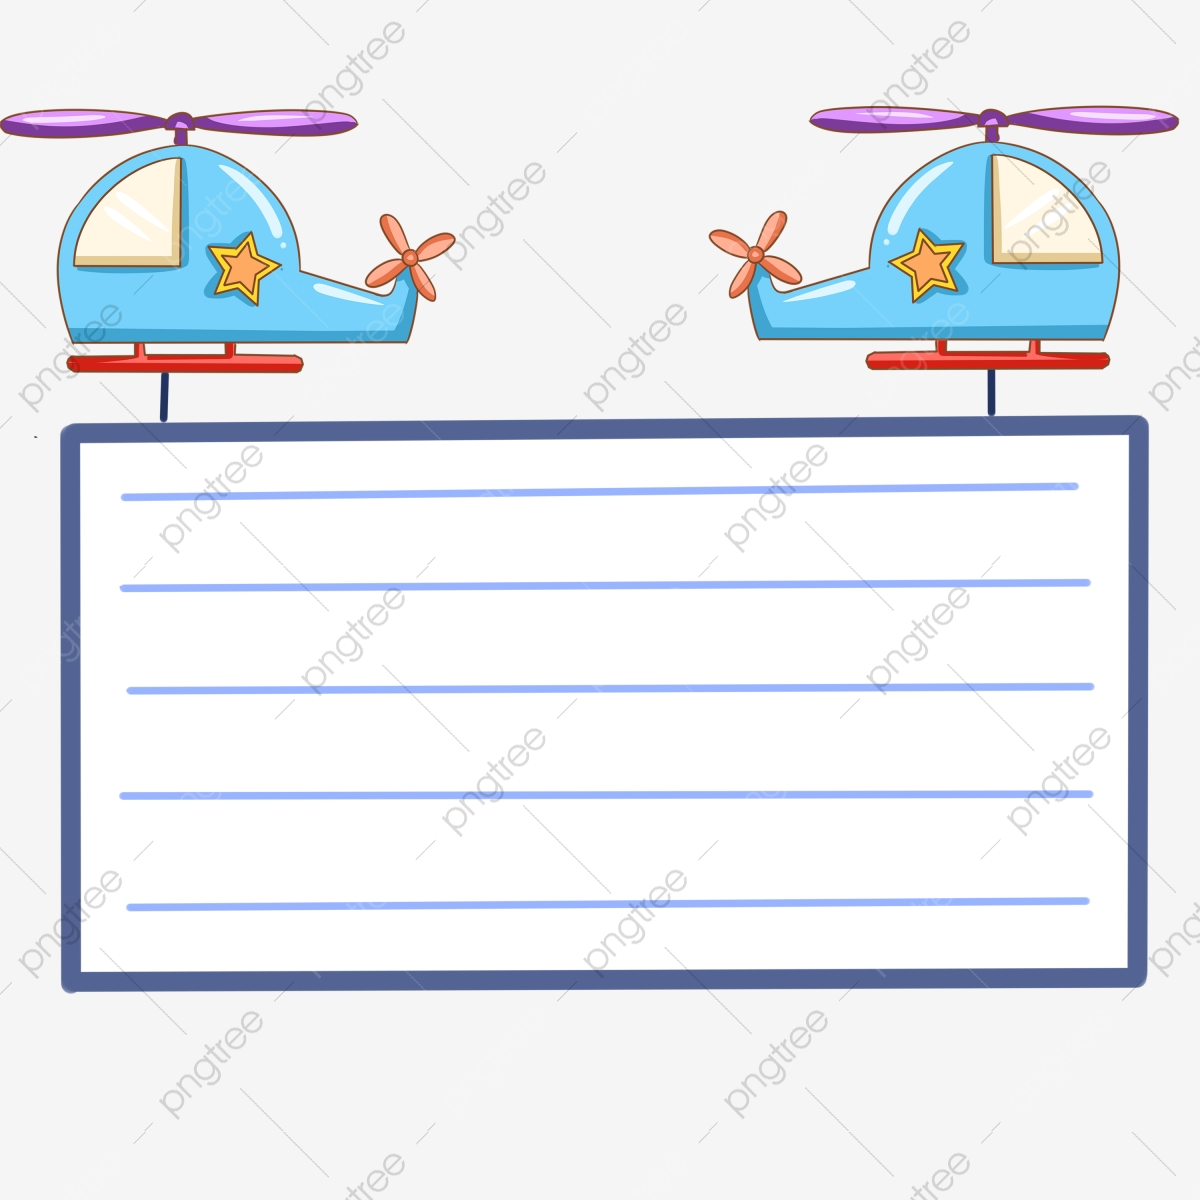 Green Border Green Dotted Frame Cute Border Cartoon Border, Cartoon Airplane,  Cartoon Clouds, Green Double Wire Frame PNG Transparent Clipart Image and  PSD File for Free Download